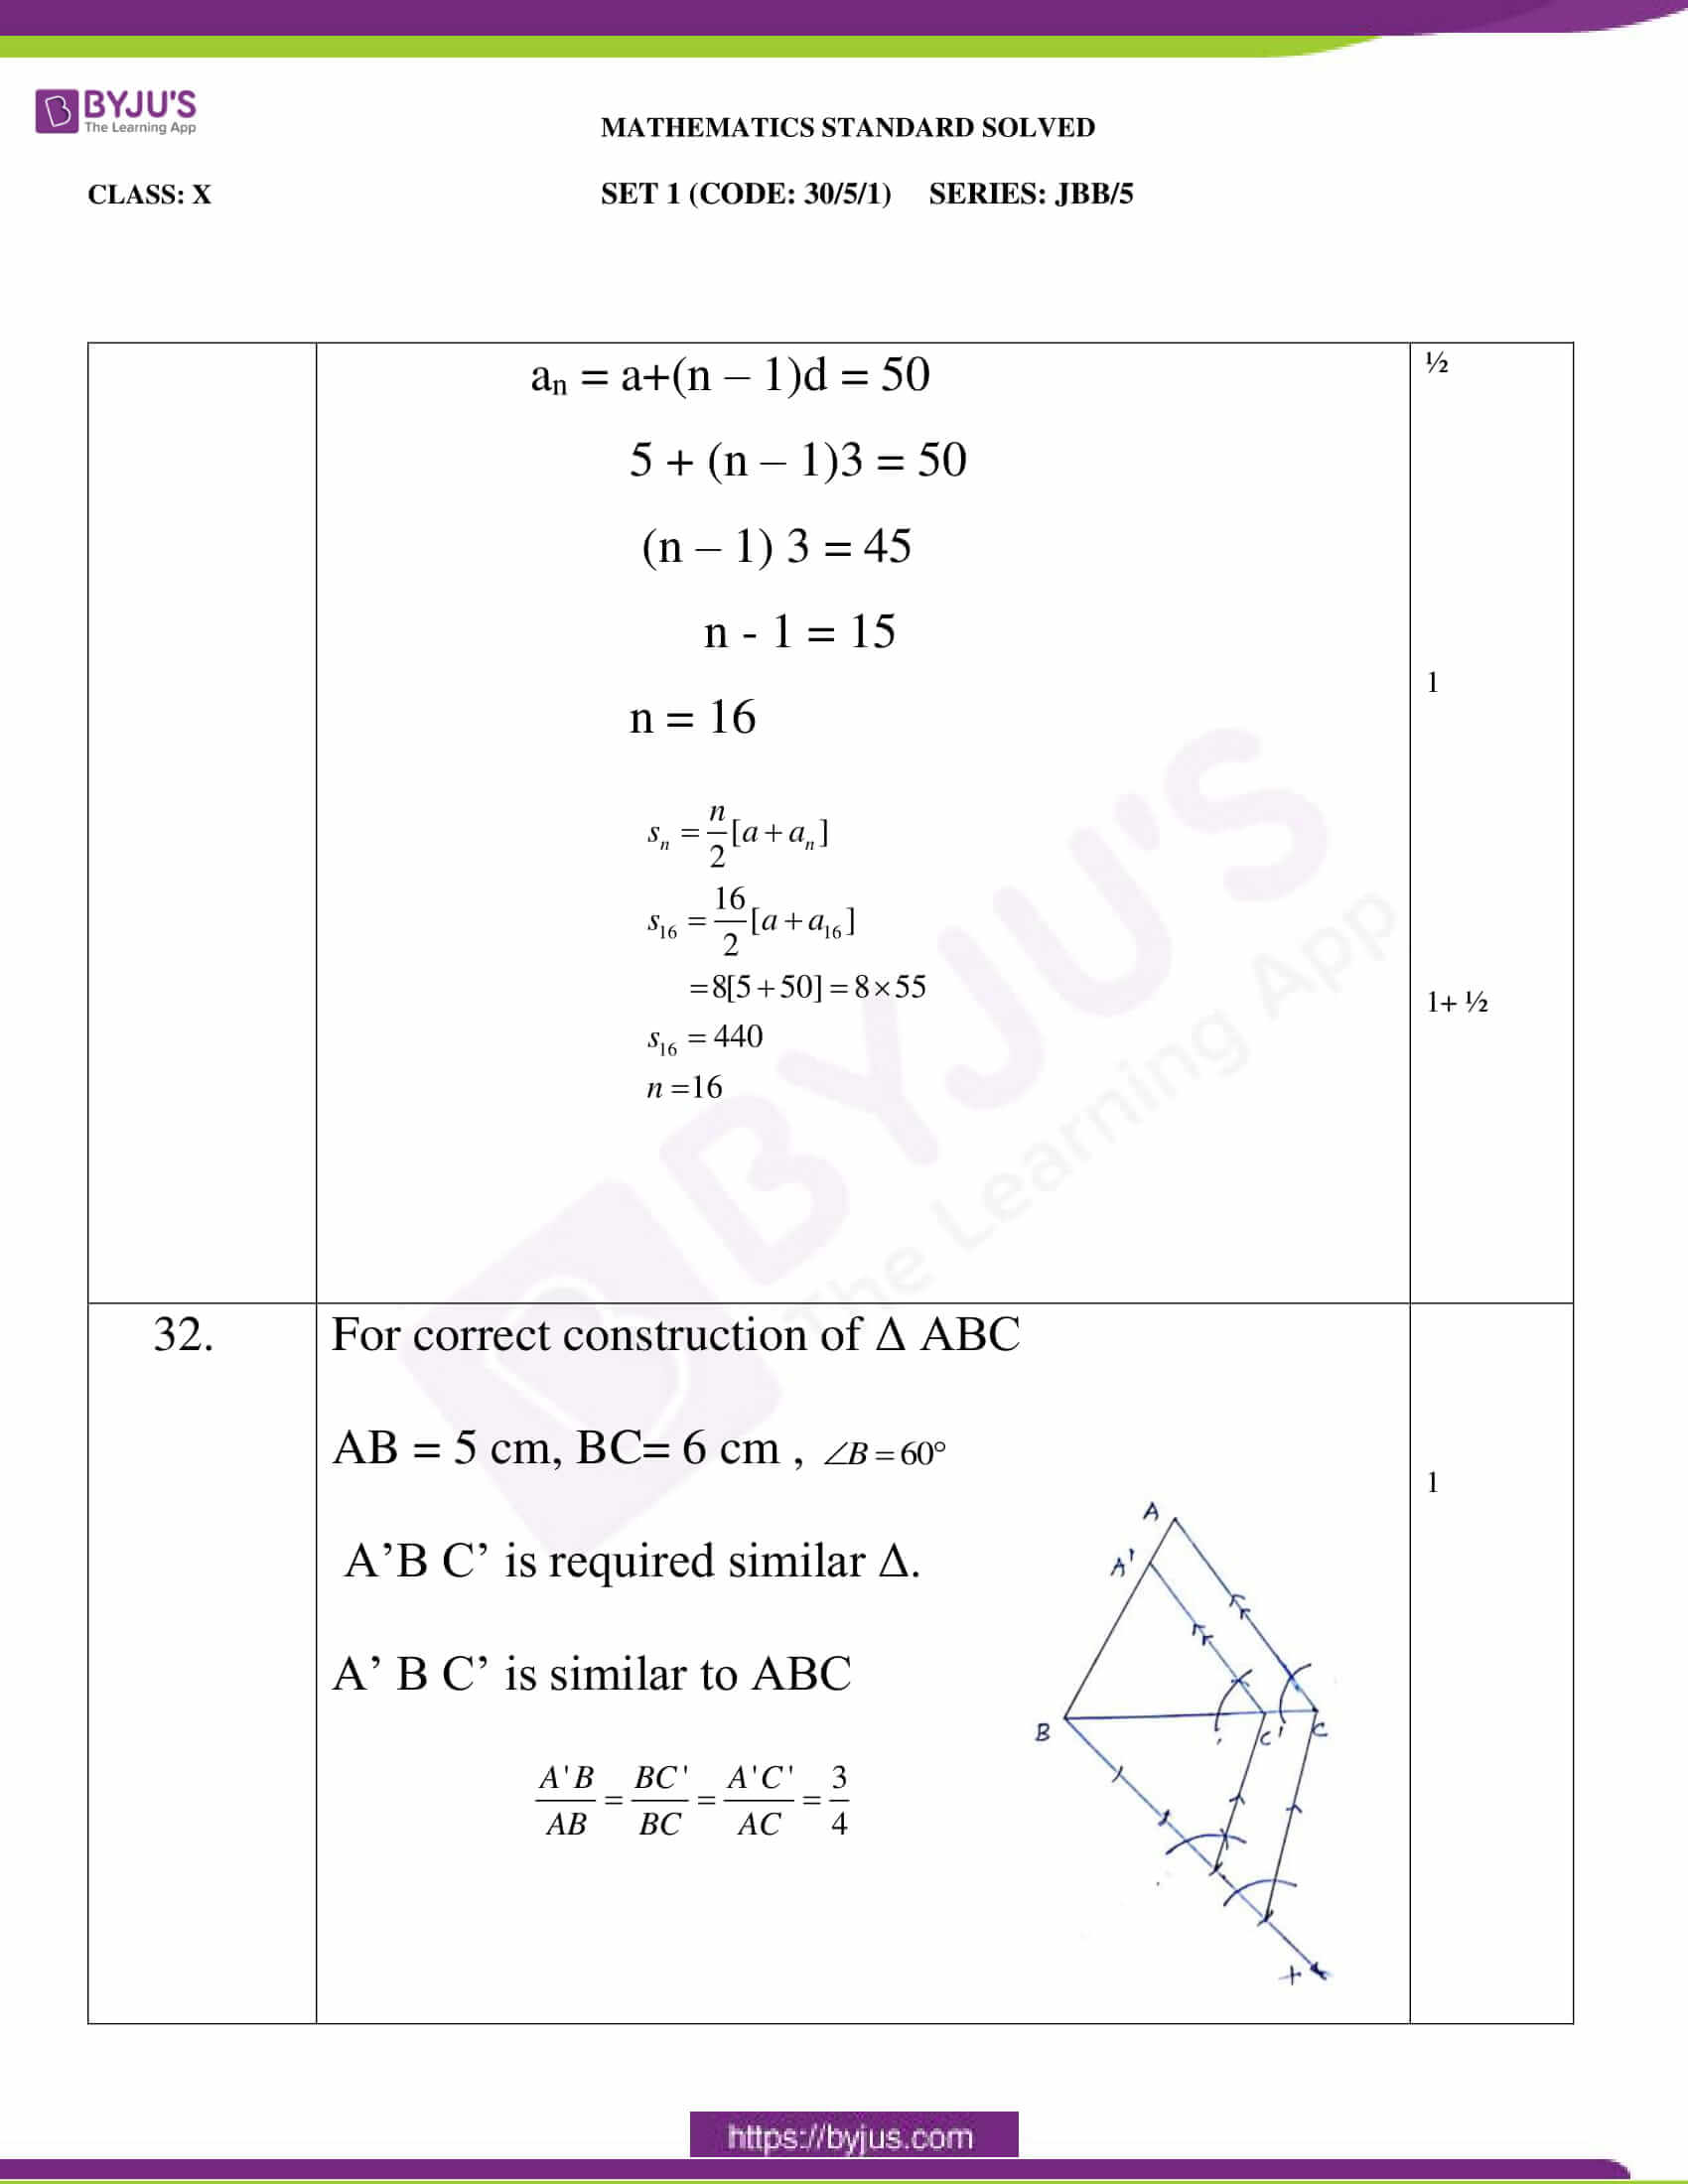 cbse class 10 maths standard question paper solution 2020 set 1 13